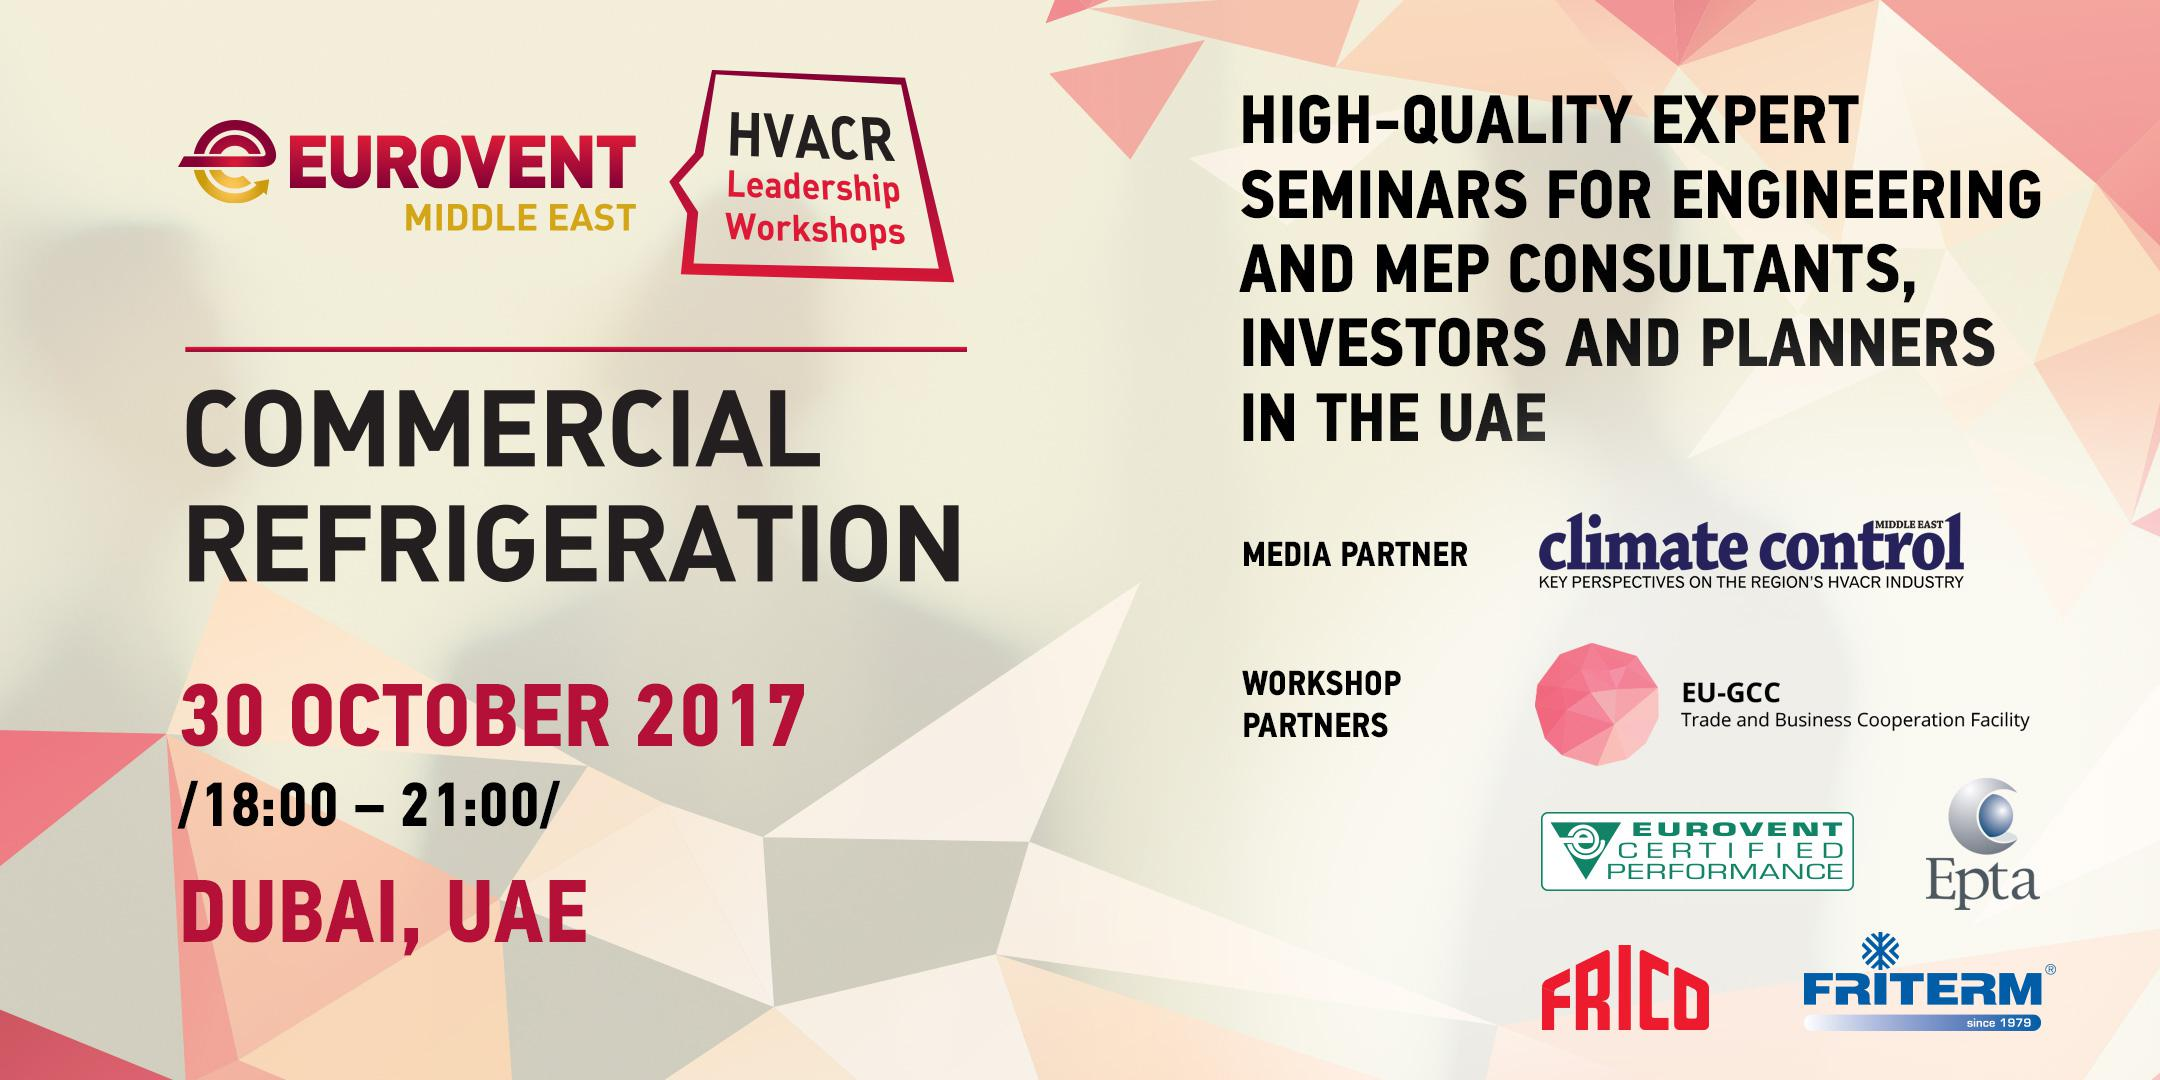 2017 - 'HVACR Leadership Workshops by Eurovent Middle East' - Commercial Refrigerationą